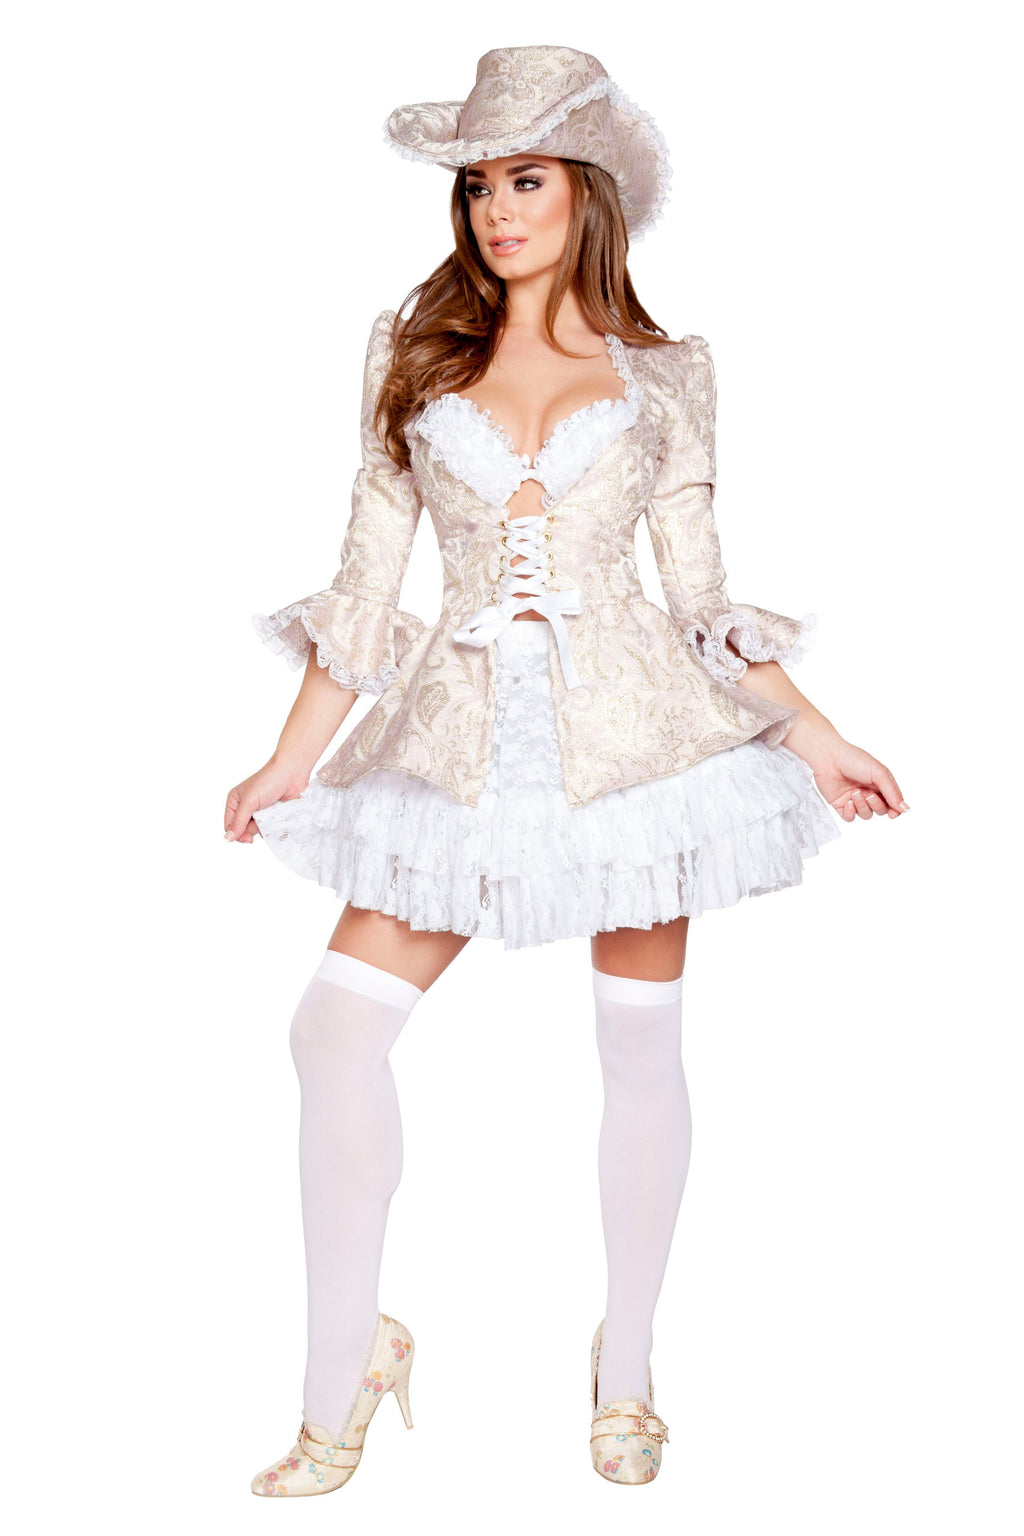 4-Piece-Sexy-Lady-Marie-Antoinette-Bra-Top-w/-Jacket-&-Skirt-Costume